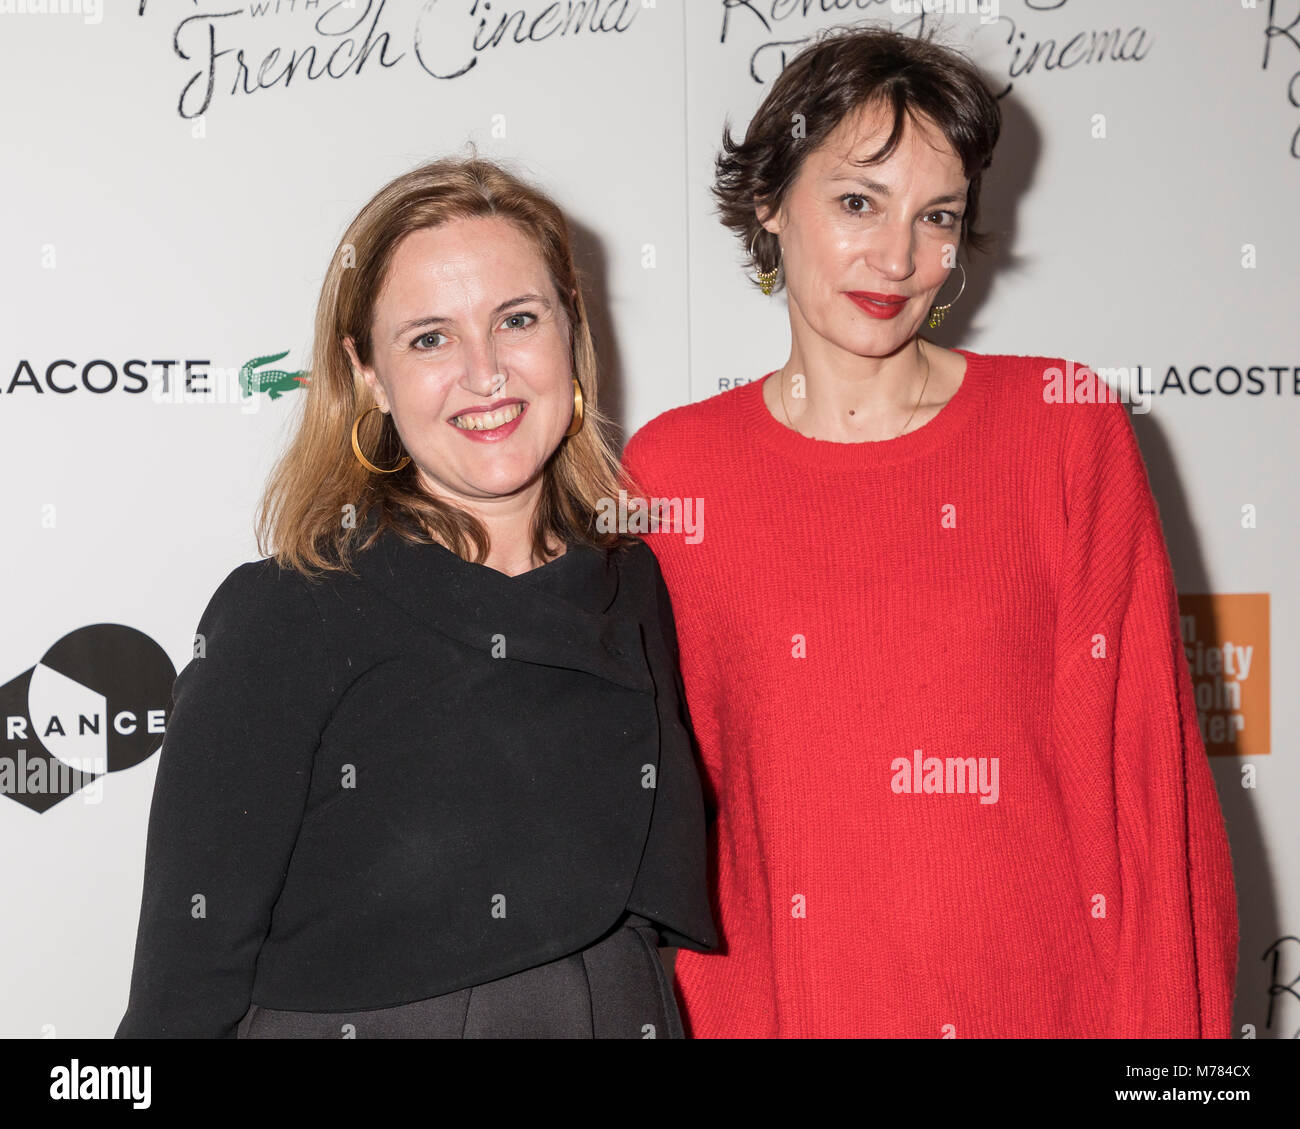 New York, NY, USA - March 8, 2018: Benedicte de Montlaur, Jeanne Balibar attend Renez-Vous with French Cinema Opening - Stock Image